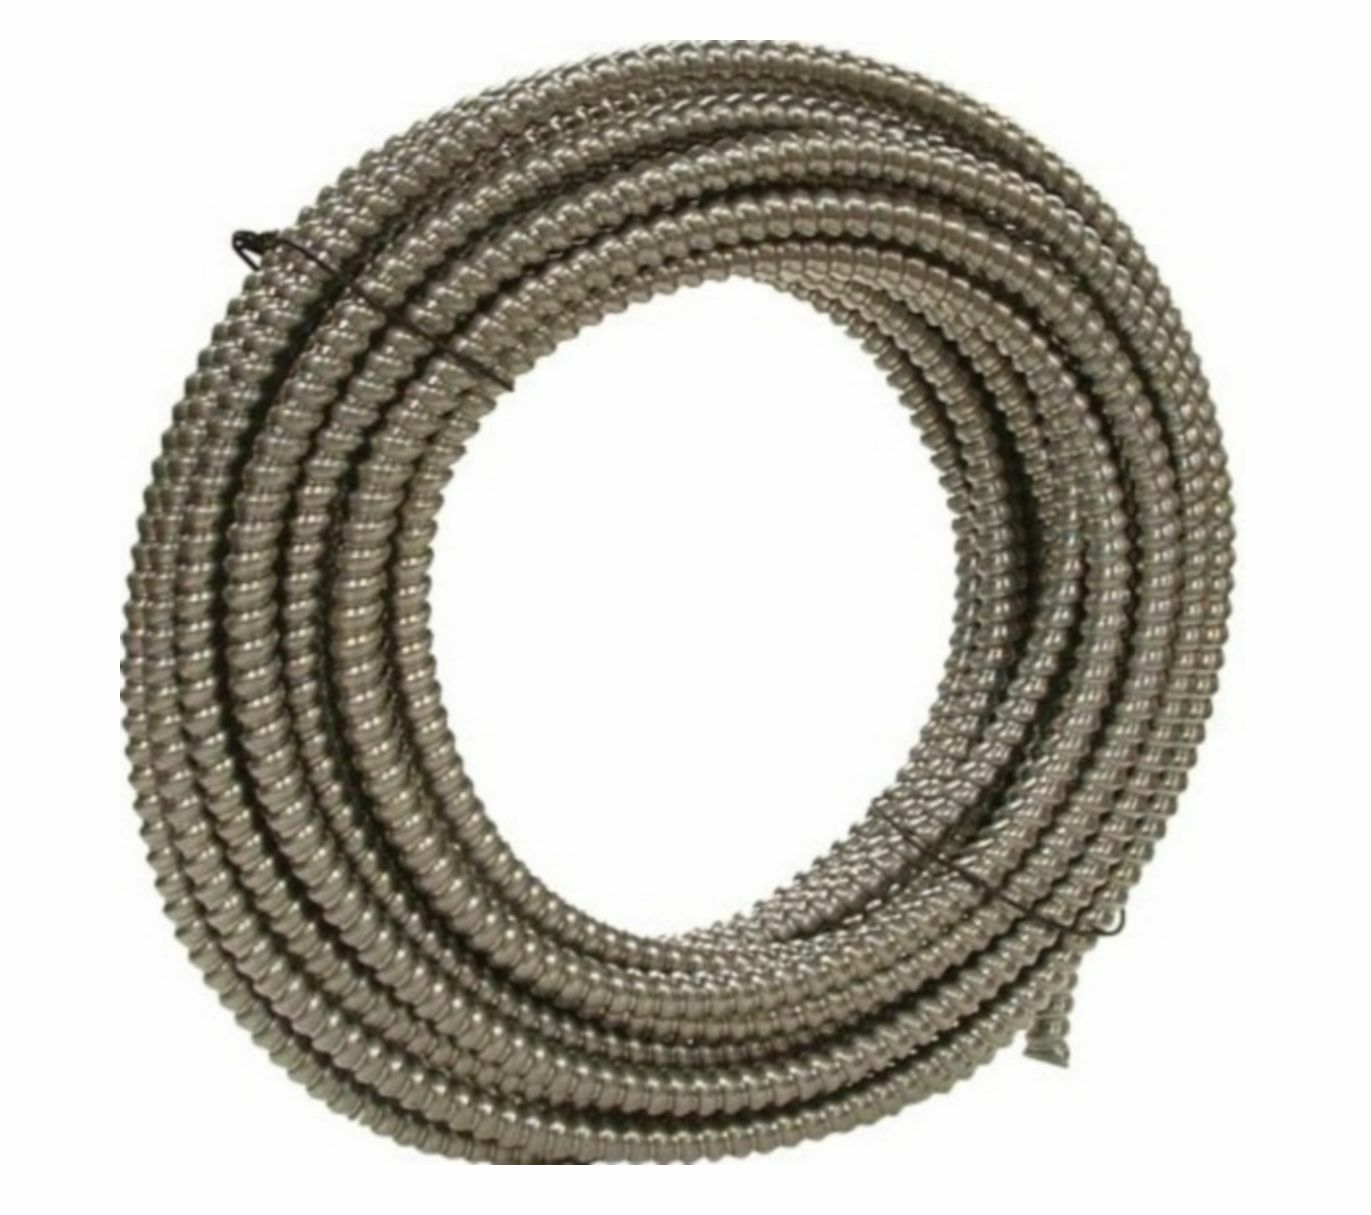 New 100 Southwire Metal Flex Flexible 3 8 Conduit 375 Electrical Wire 1 Of 2only Available